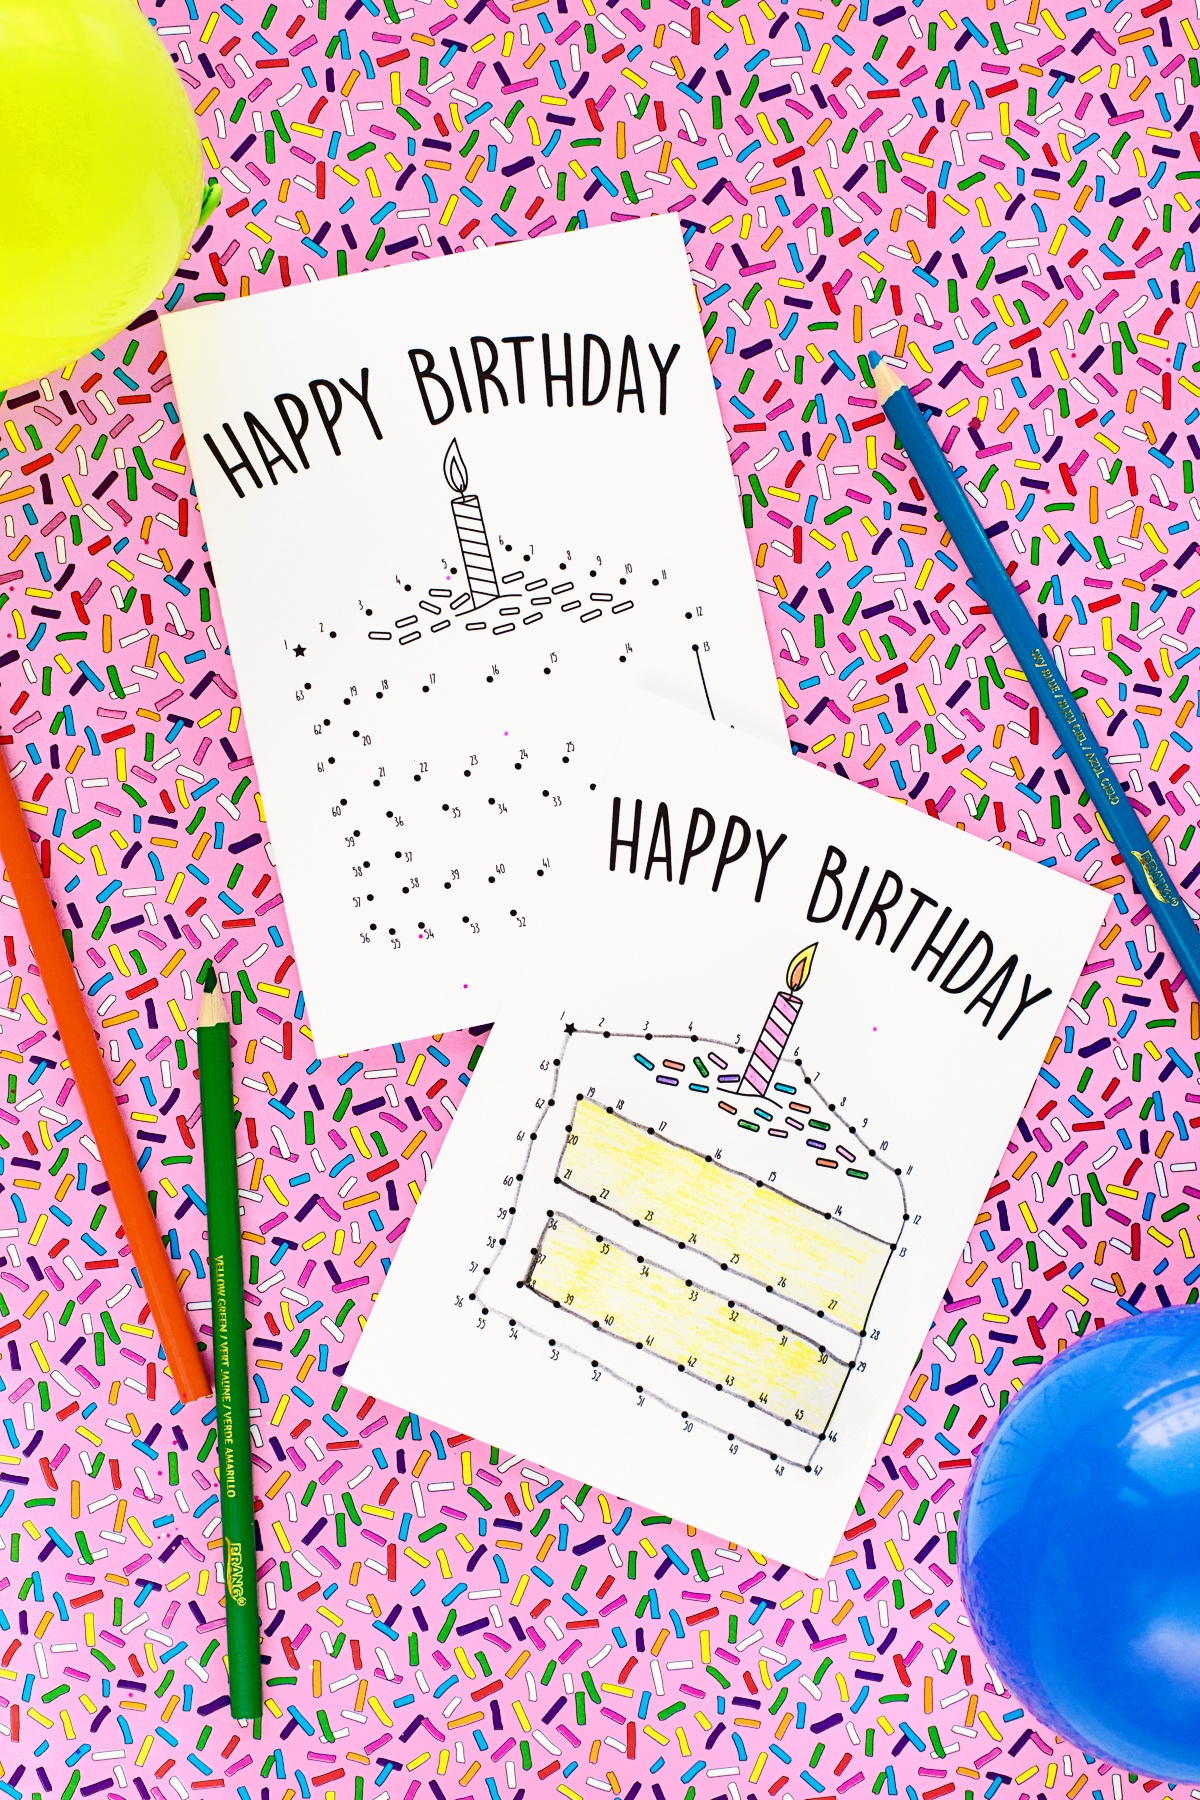 Free Printable Birthday Cards For Kids - Studio Diy - Free Printable Birthday Cards For Kids